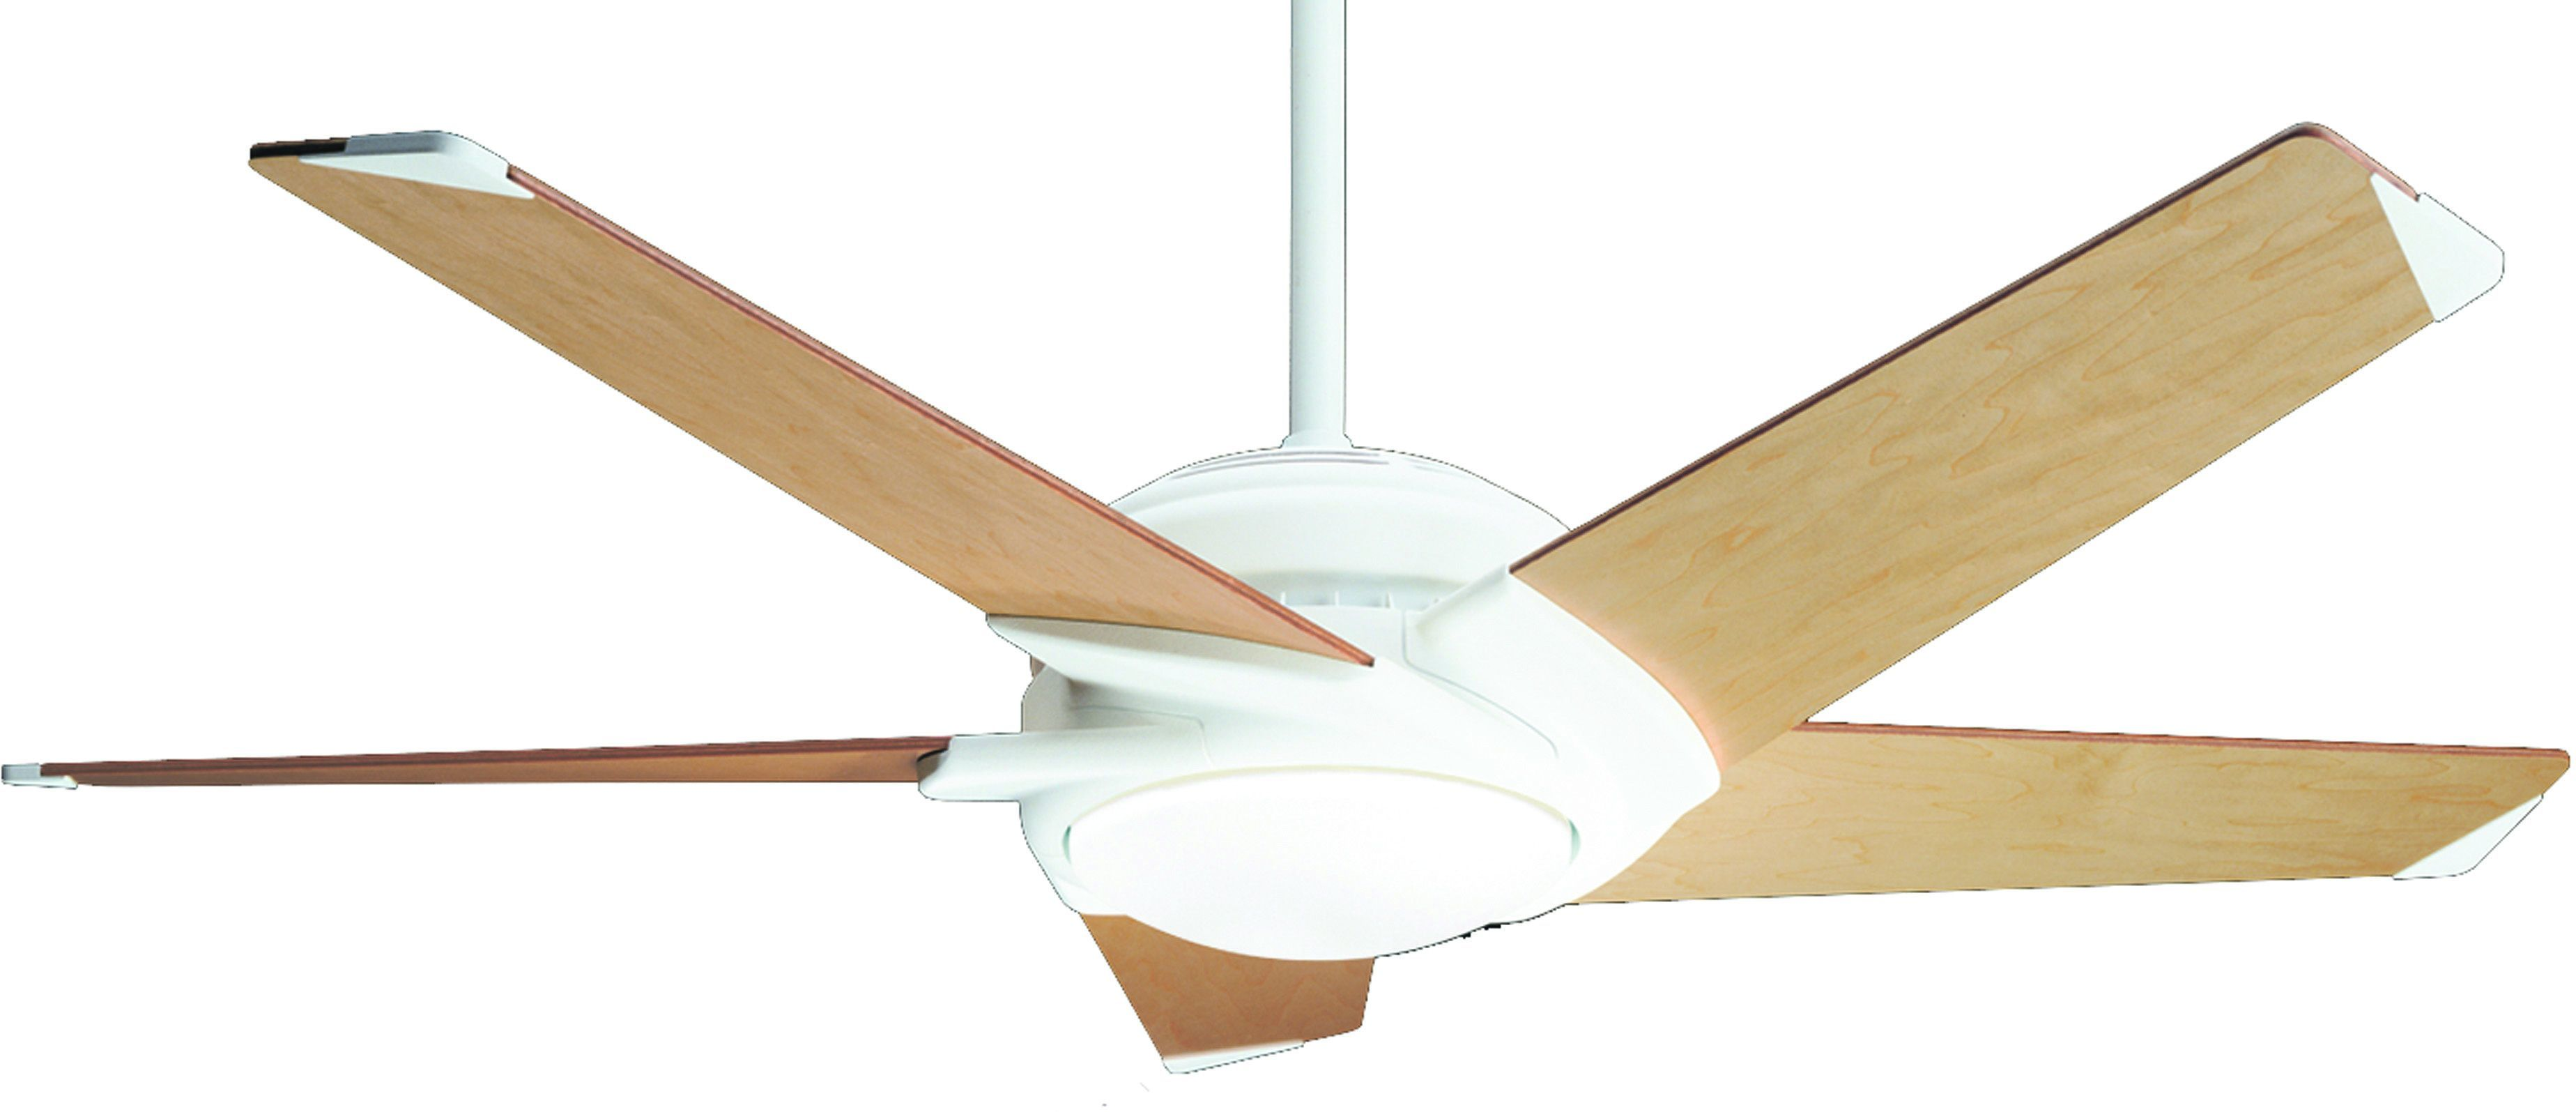 breeze outstanding fanimation harbor for design blades with ideas your andover com lights inch fans weird reviews modern propeller lowes of fan ceilings ceiling